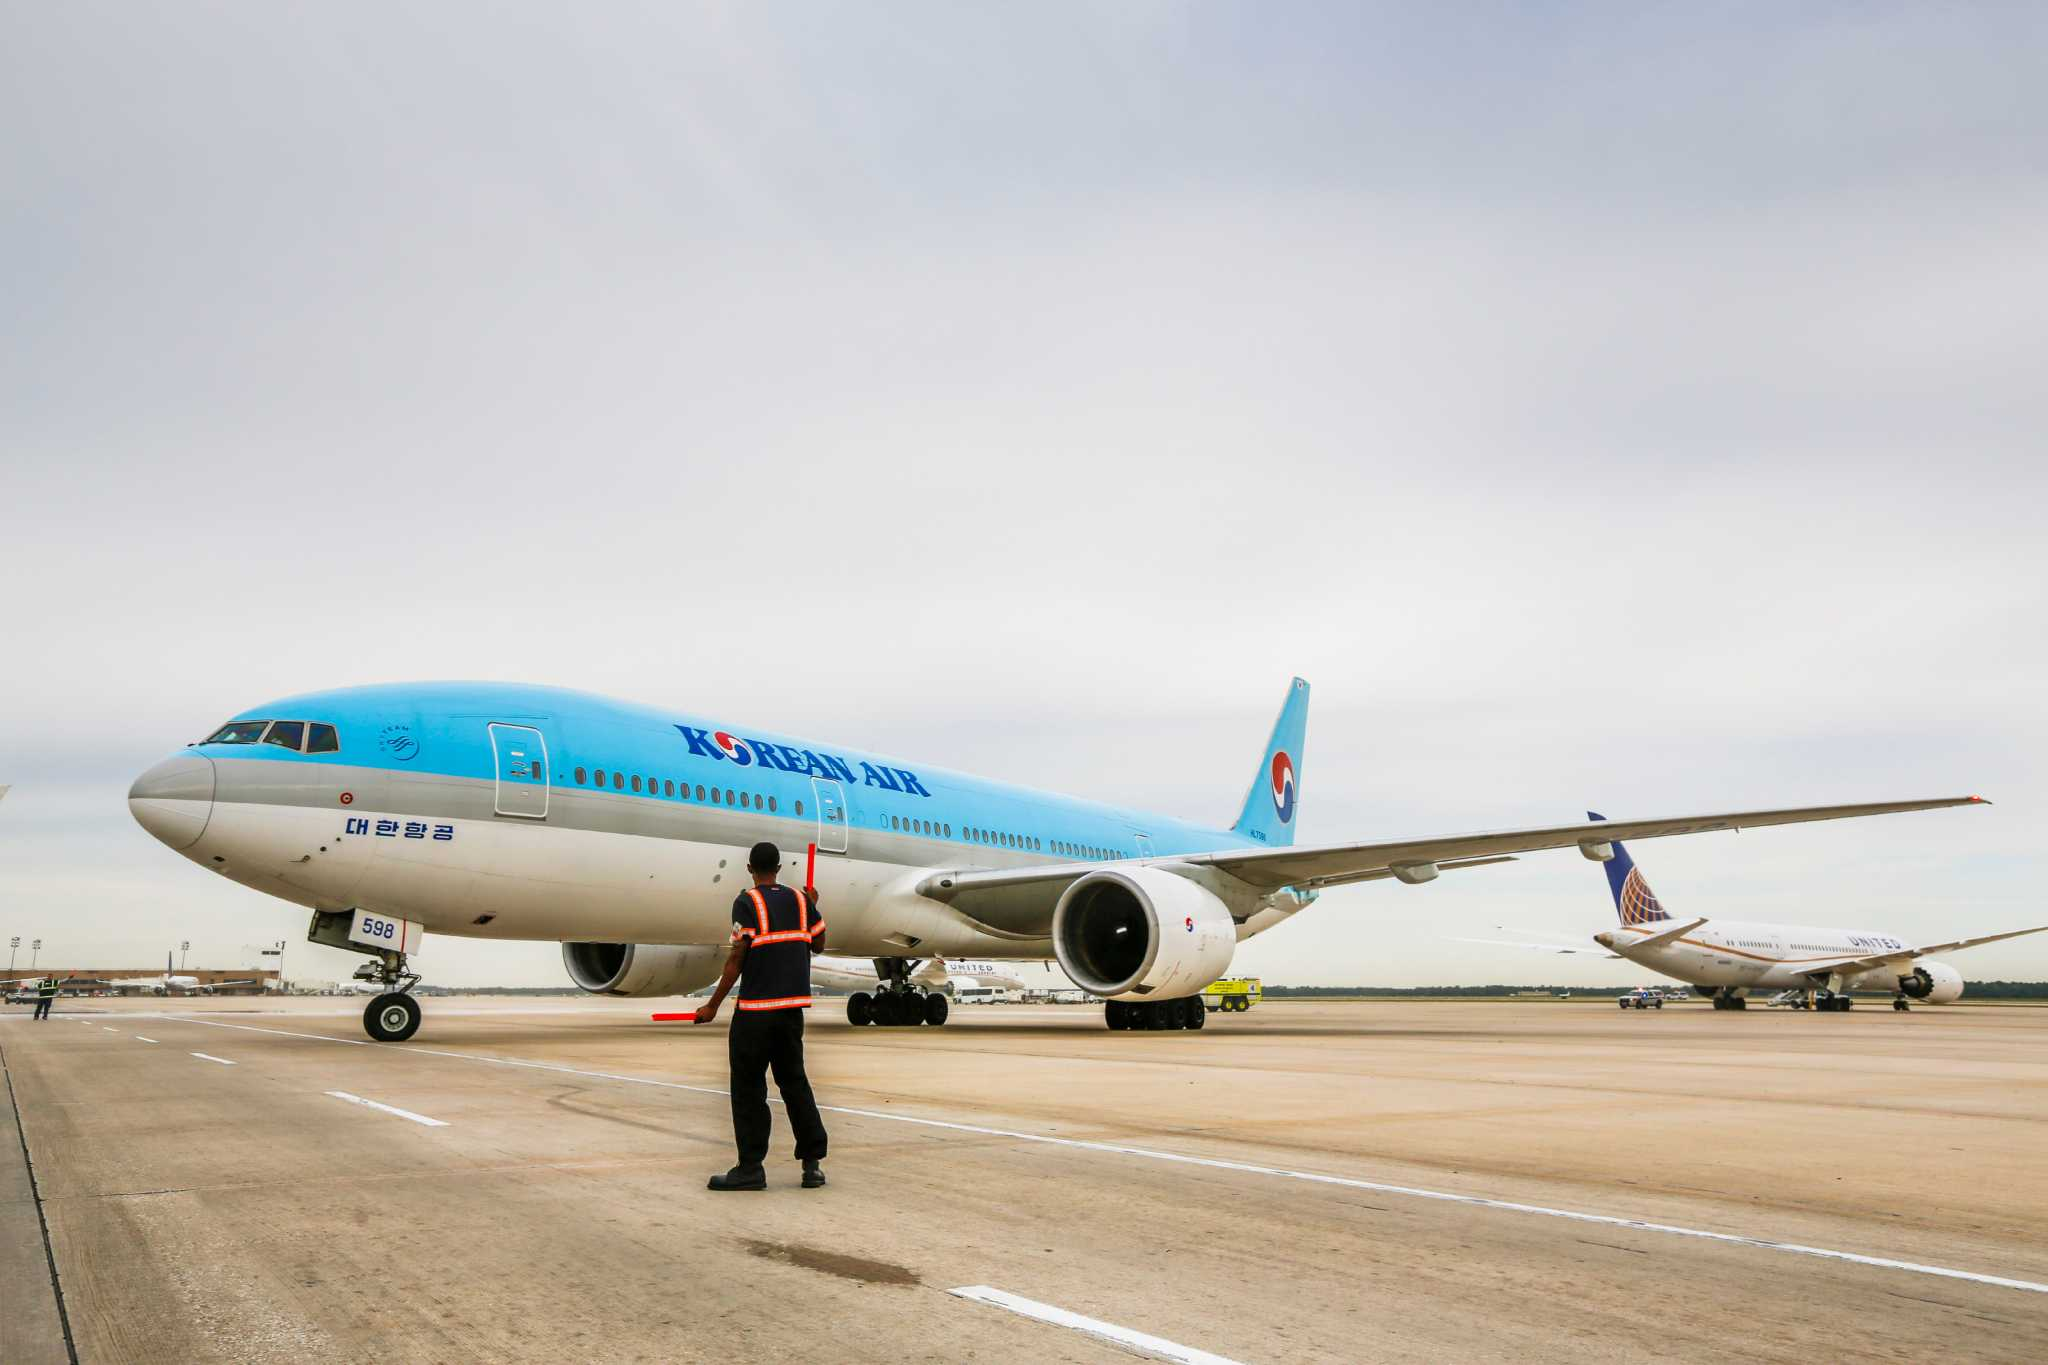 Korean Air S First Flight Takes Off From Intercontinental